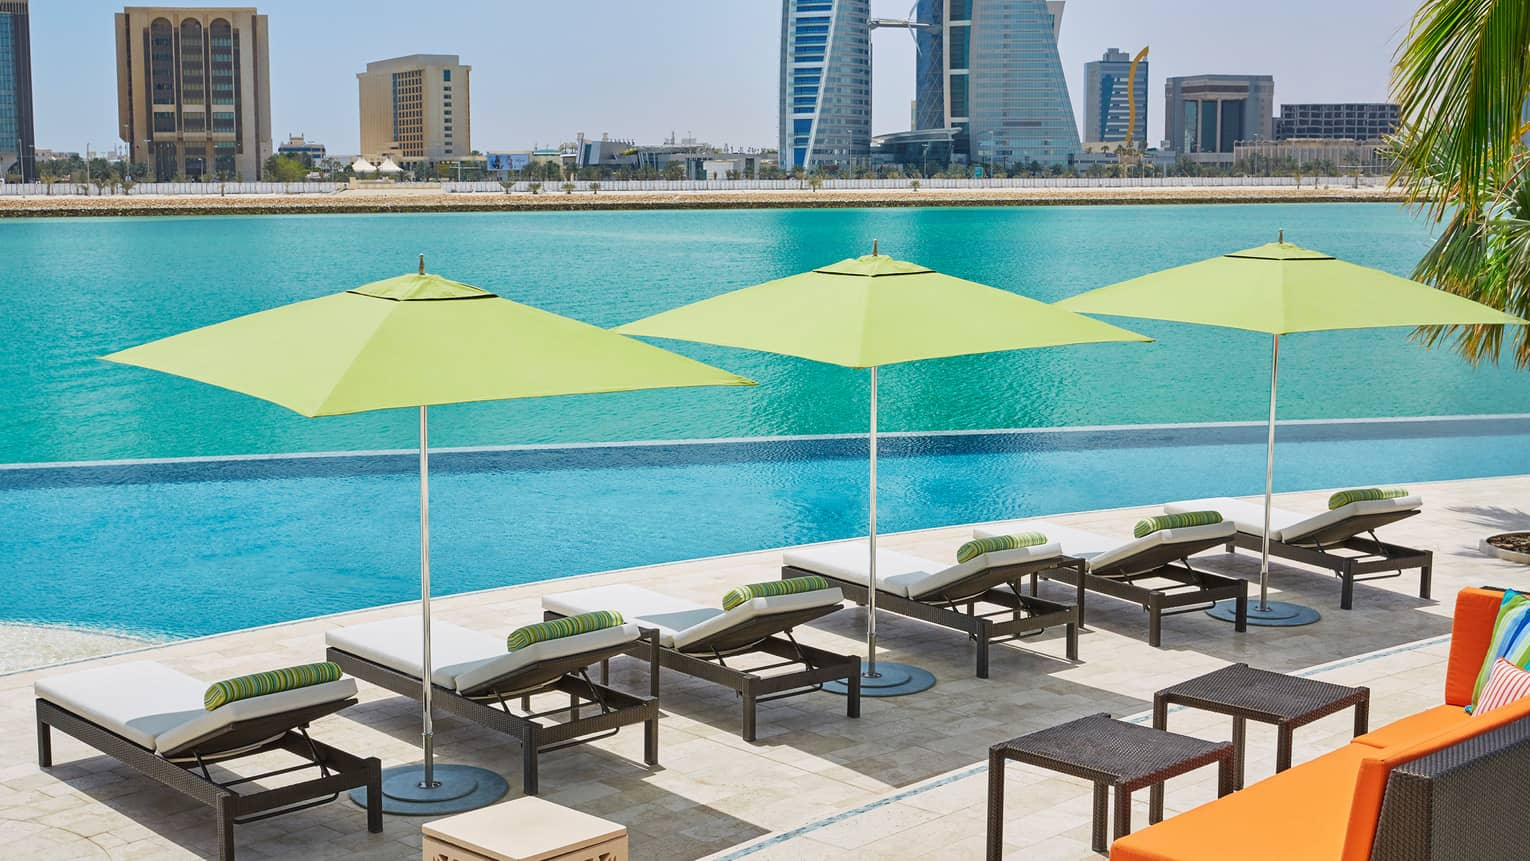 Six lounge chairs and three lime-green umbrellas in a row along infinity outdoor swimming pool